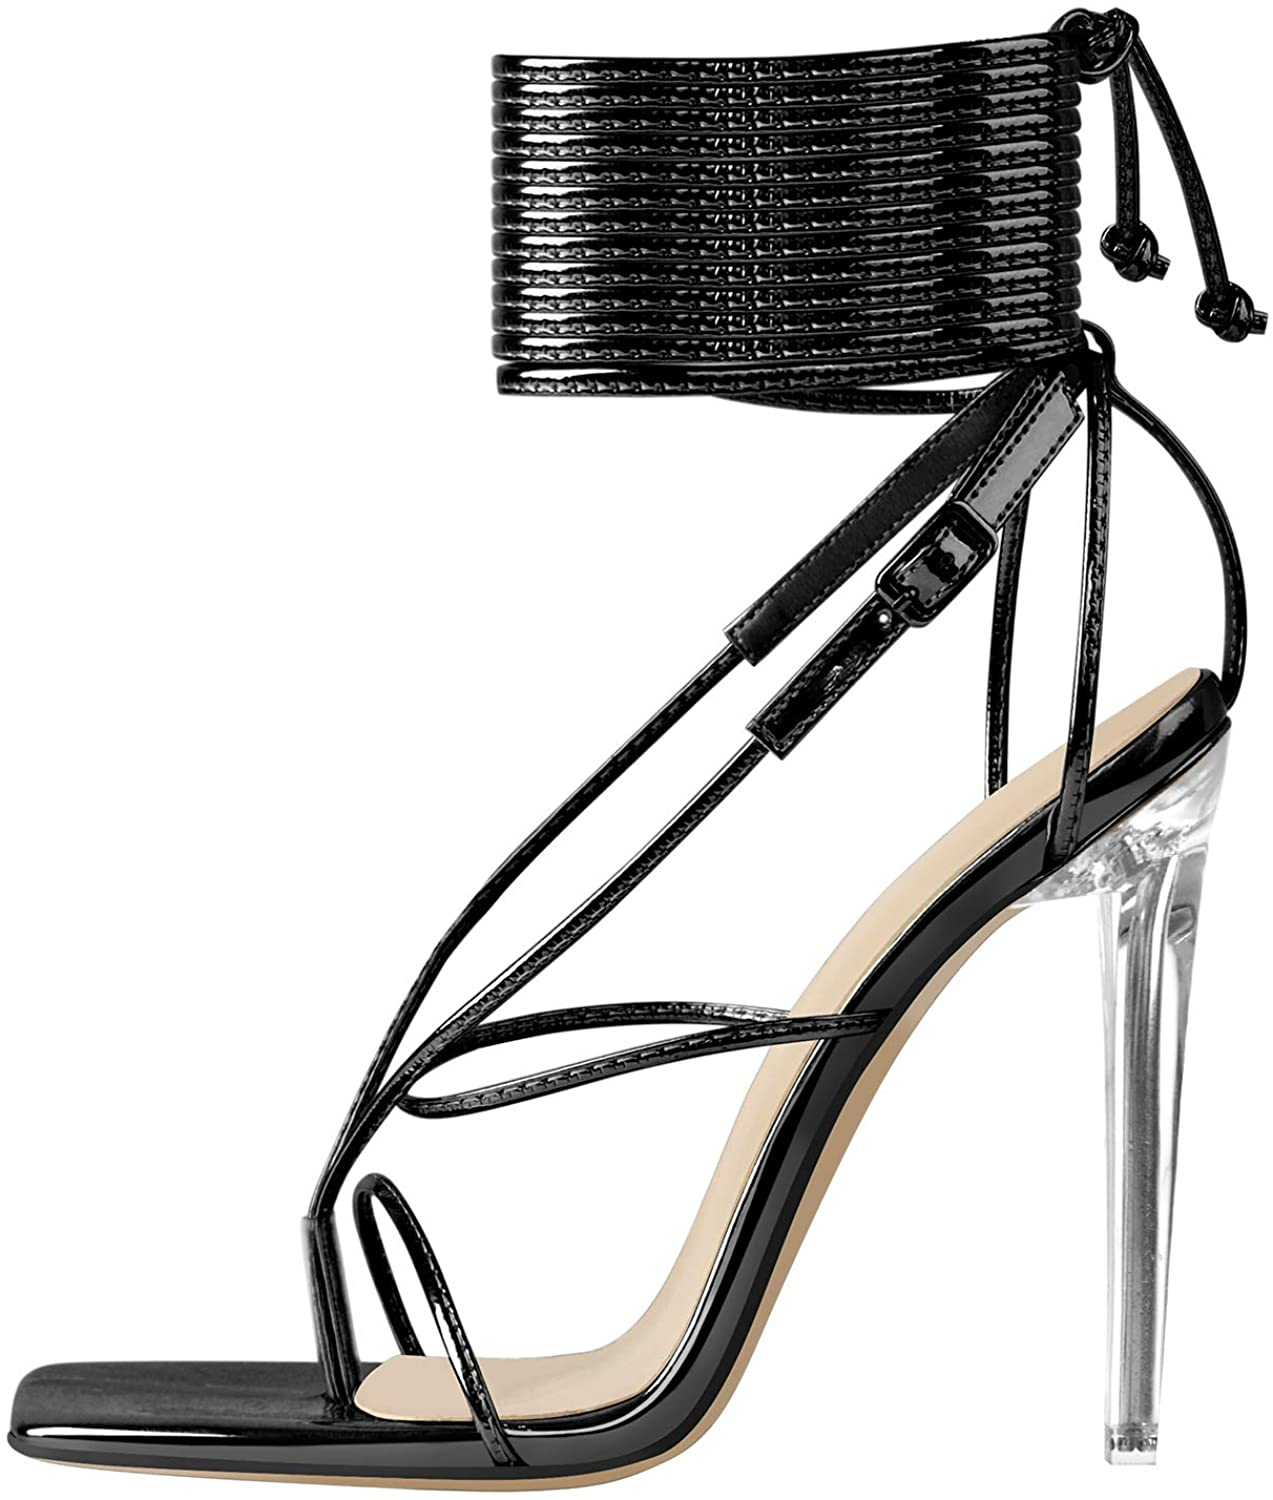 LISHAN Women's Surprise price OFFicial mail order Clear High Heels Split Sandals Gladiator Toe